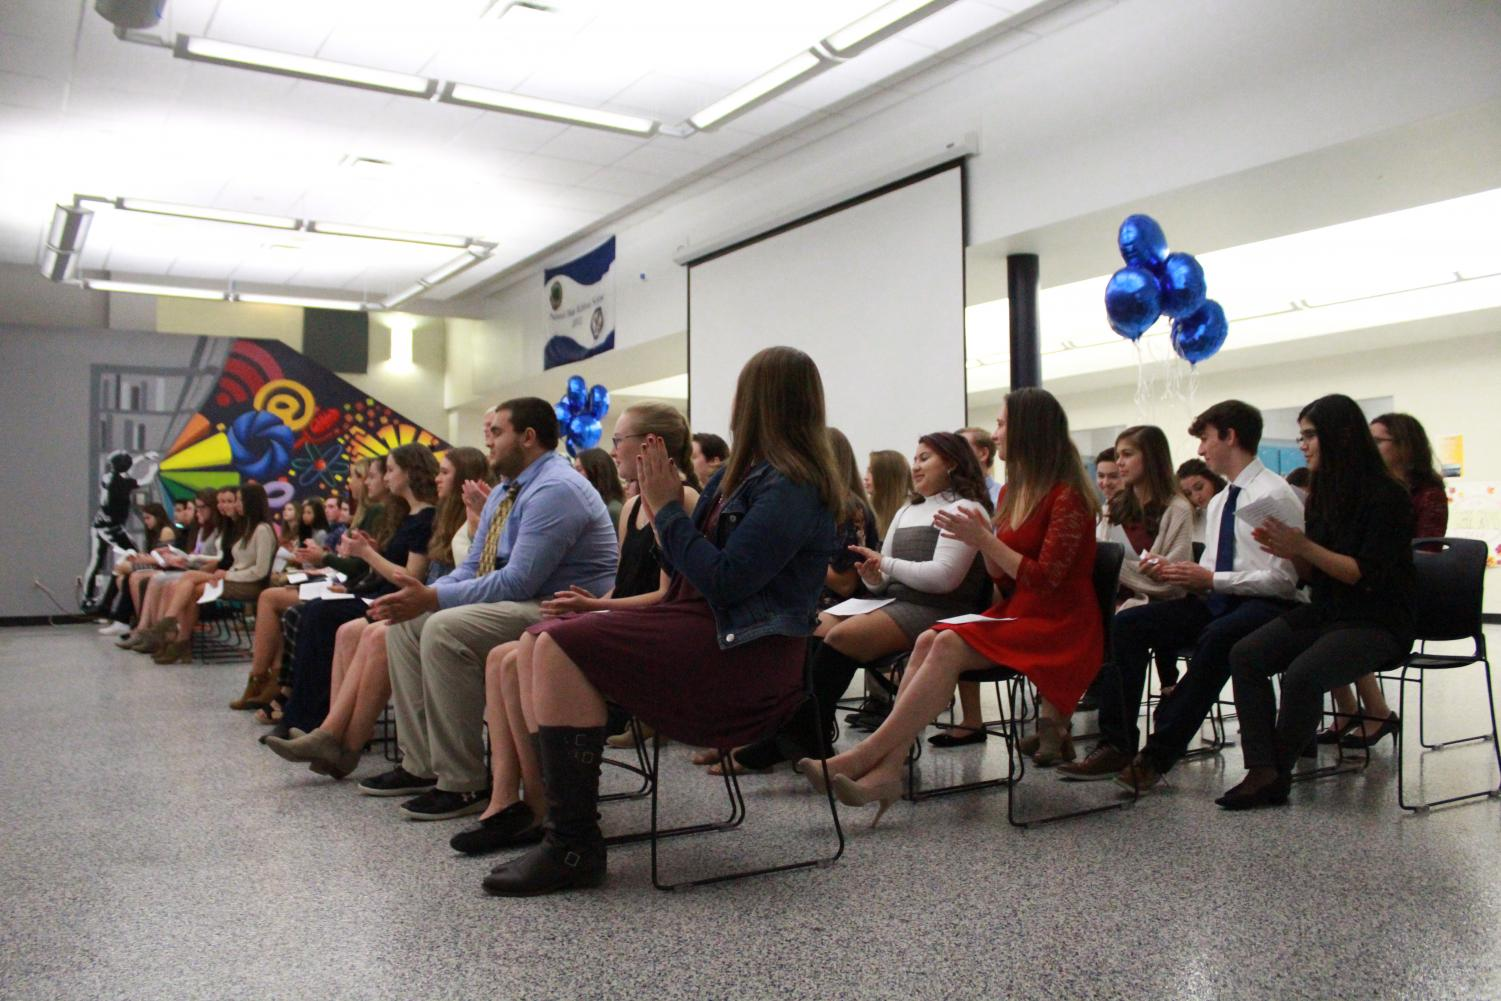 Students sit during the ceremony held on Thursday.